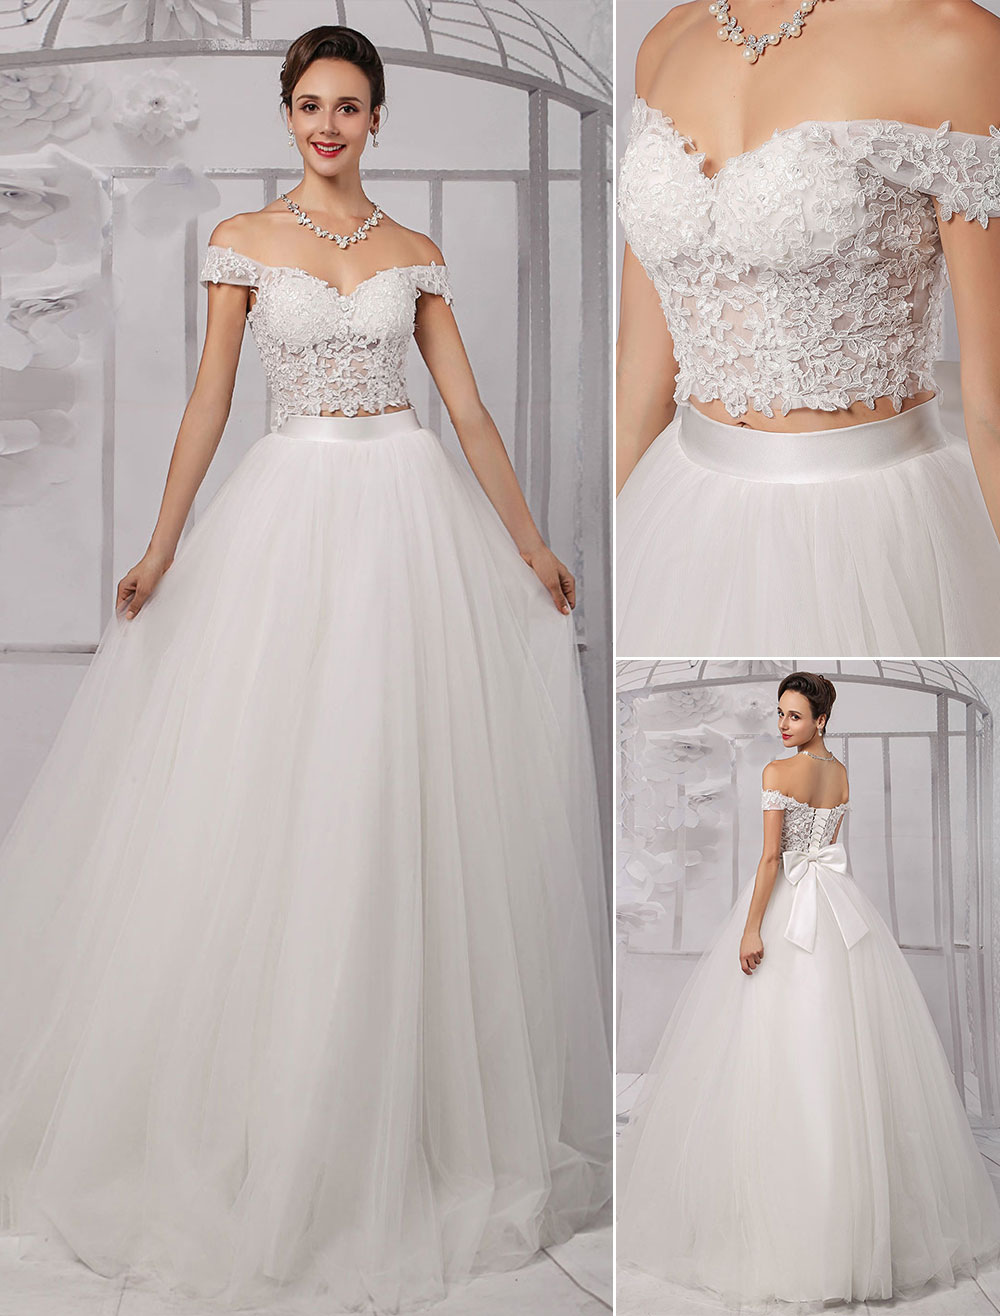 7190fbc10c42f Two-Pieces Crop Top Off-the-shoulder Ball Gown Wedding Dress With Tulle  Skirt Milanoo